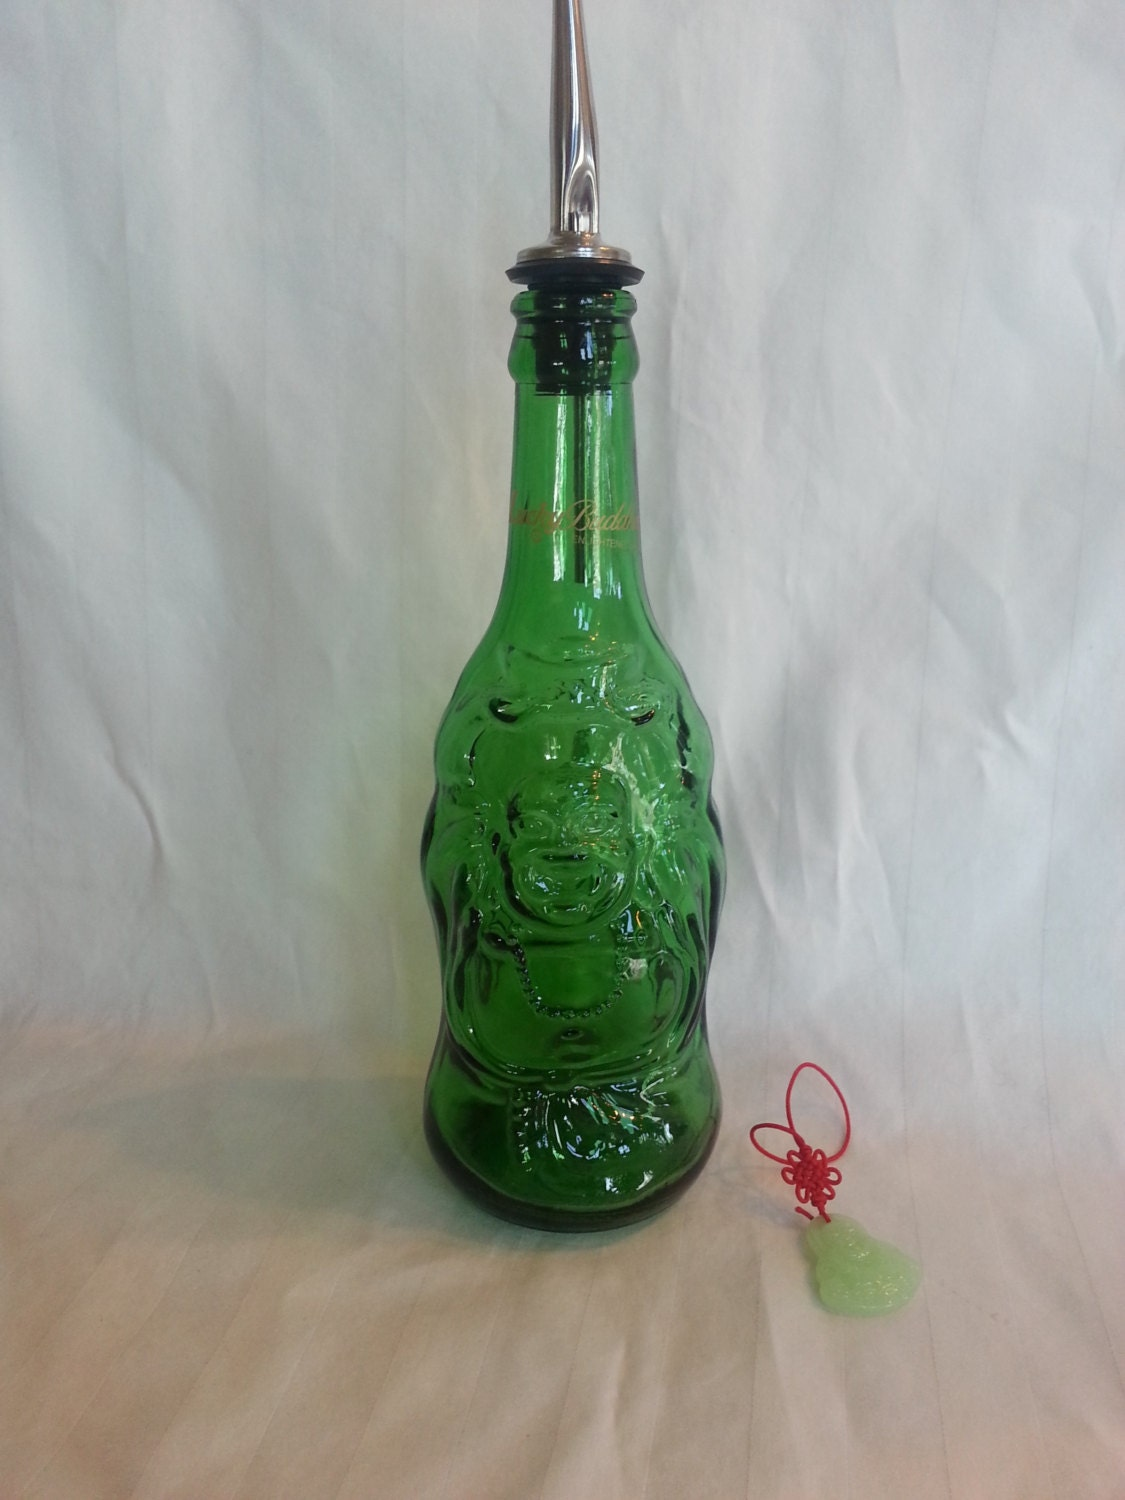 Lucky Green Buddha Dish Soap Dispenser Zen Bottle Dishsoap